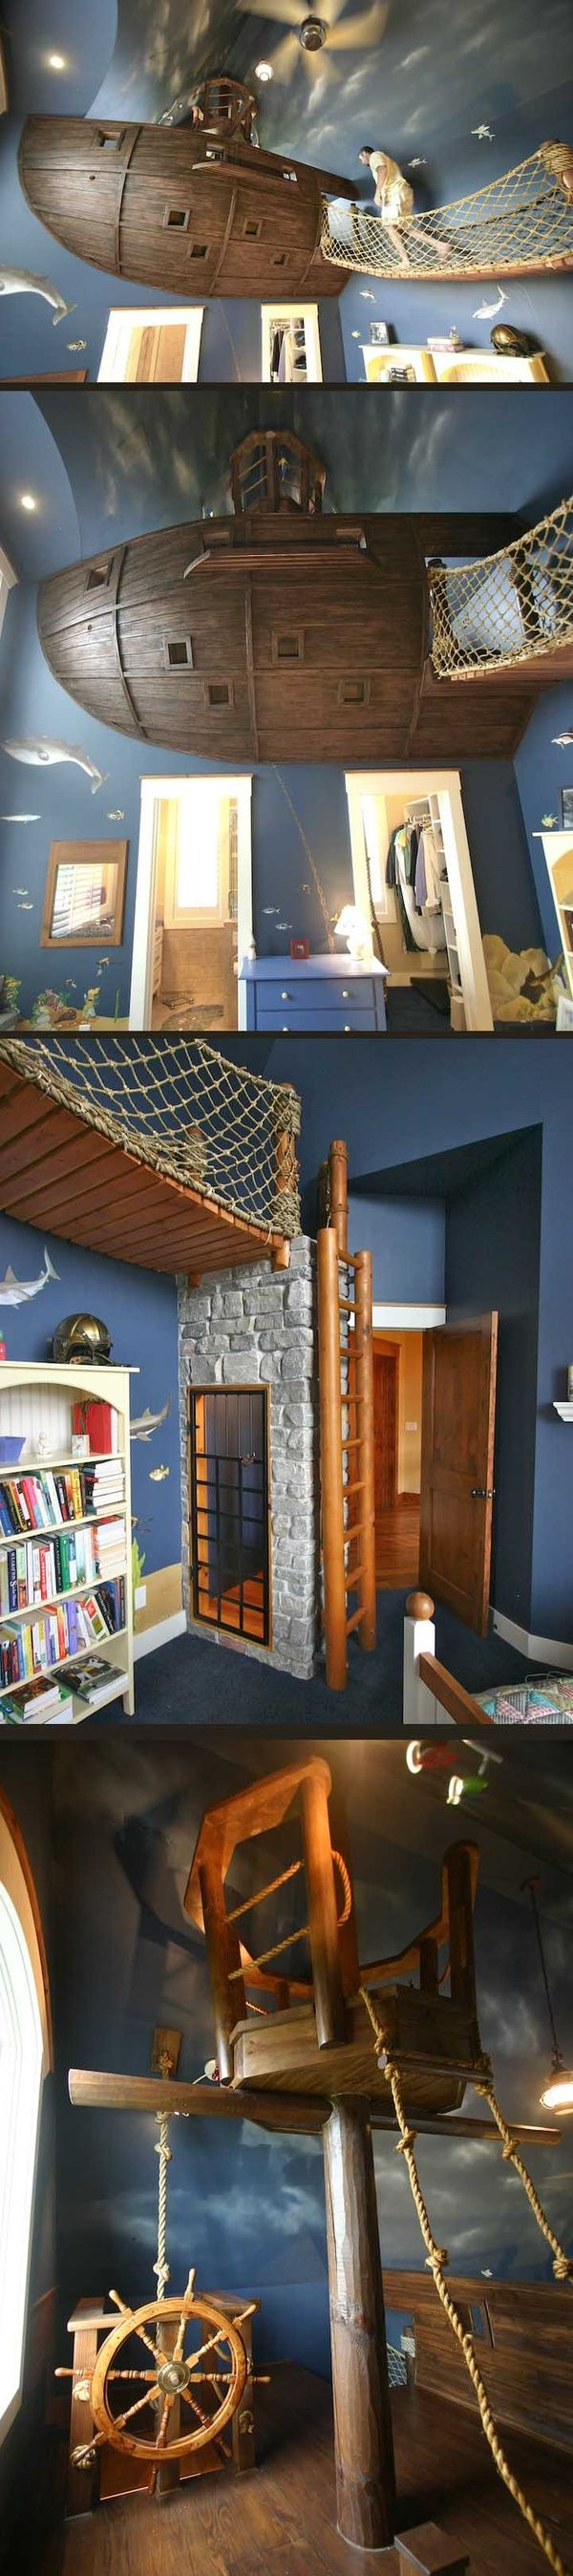 64 best Kids bedrooms images on Pinterest | Child room, Play rooms ...